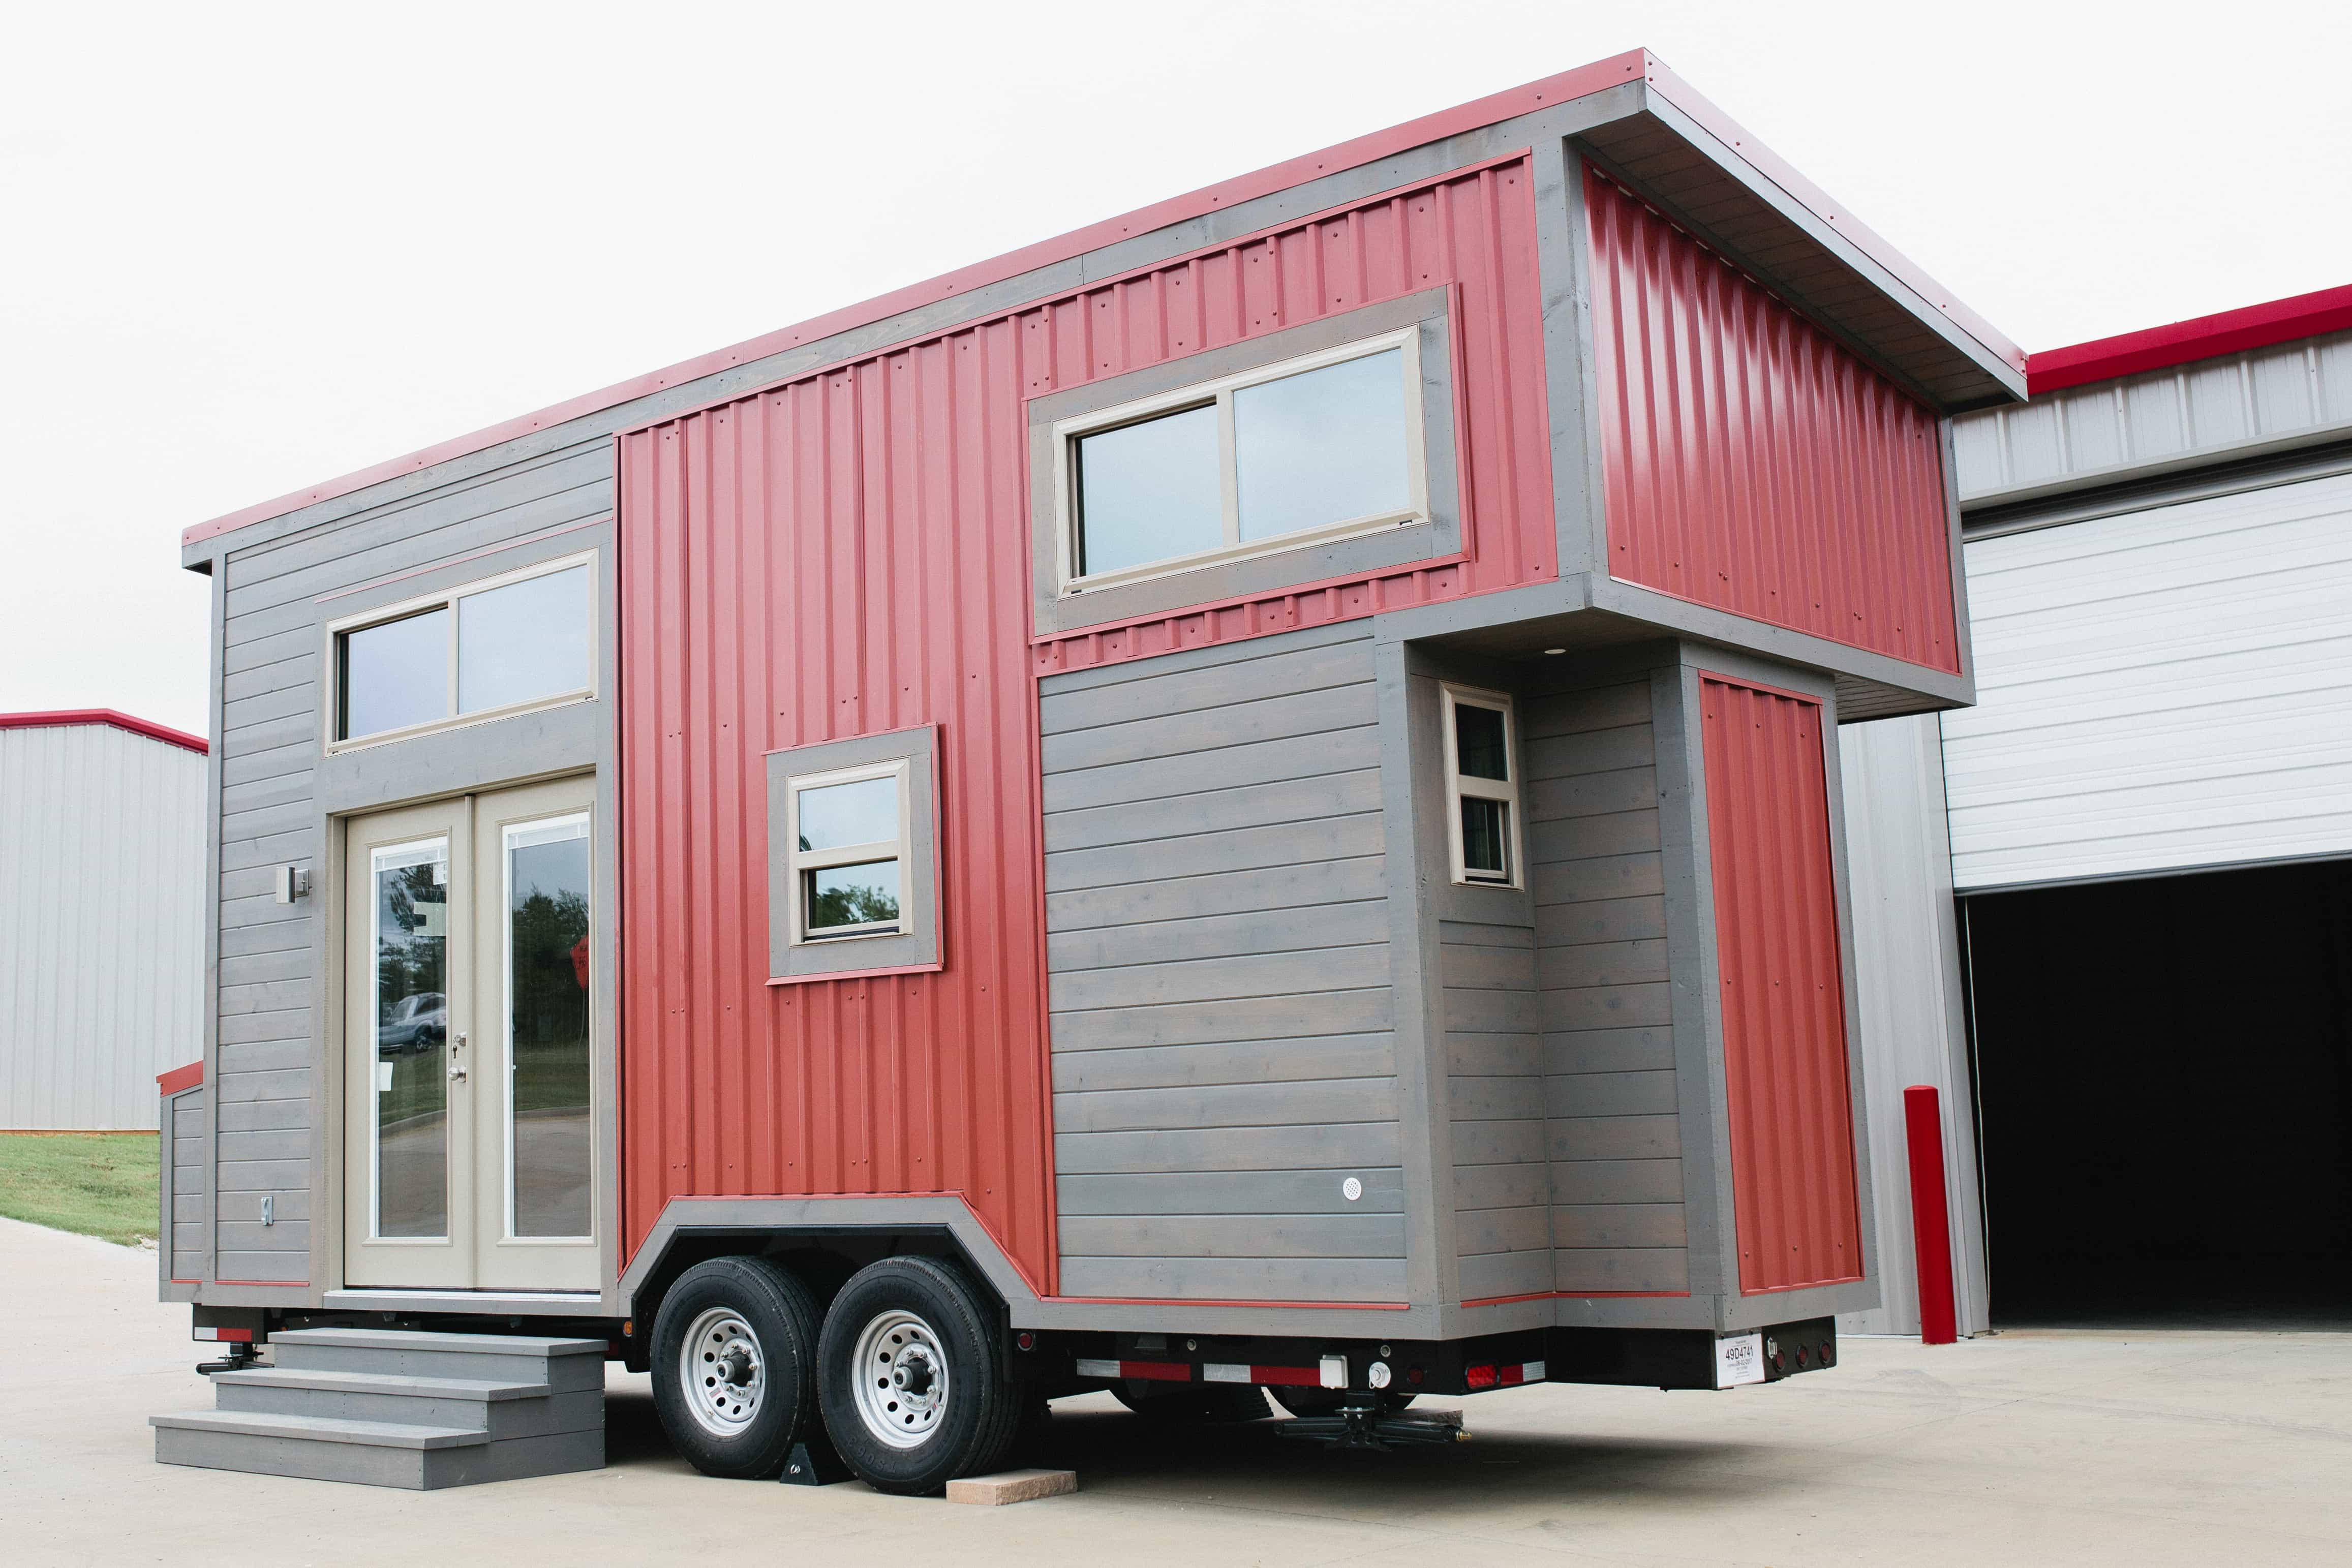 Houston American Tiny House Dream Model